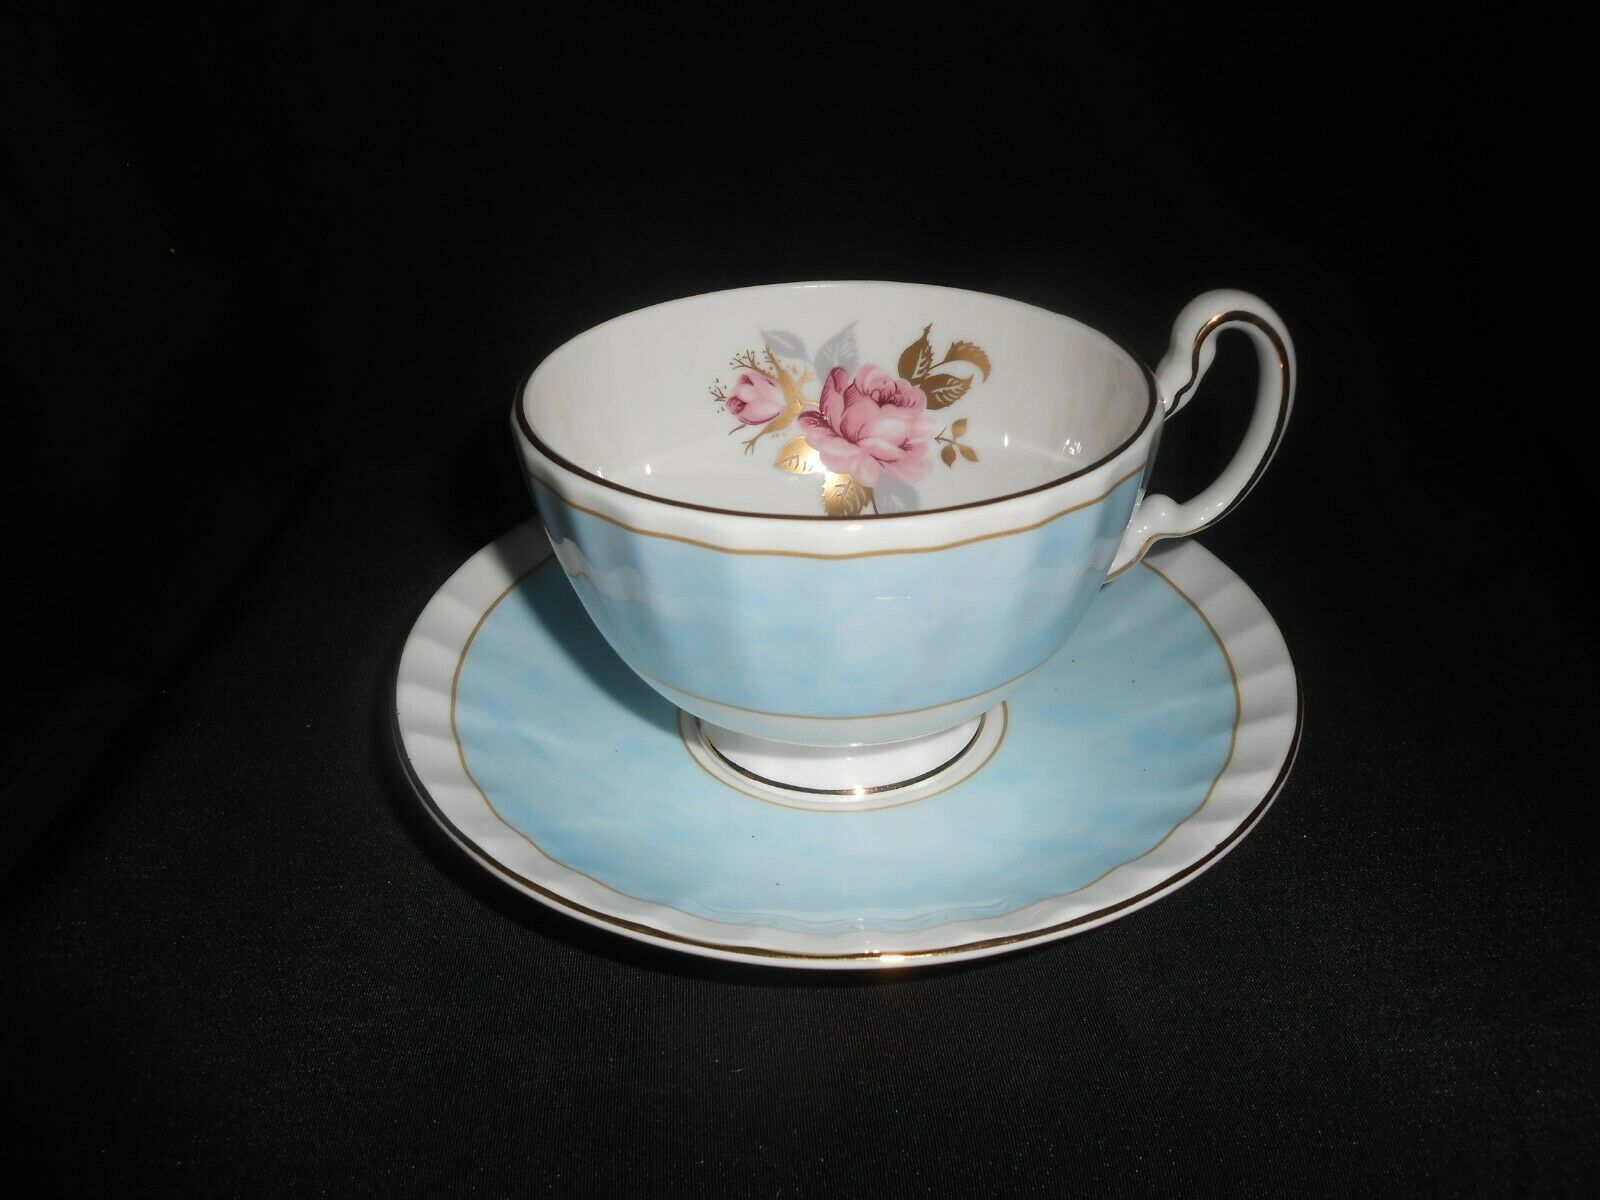 Aynsley Tea Trio Pale Blue Pink Cabbage Rose 3 Piece Set Vintage China image 9